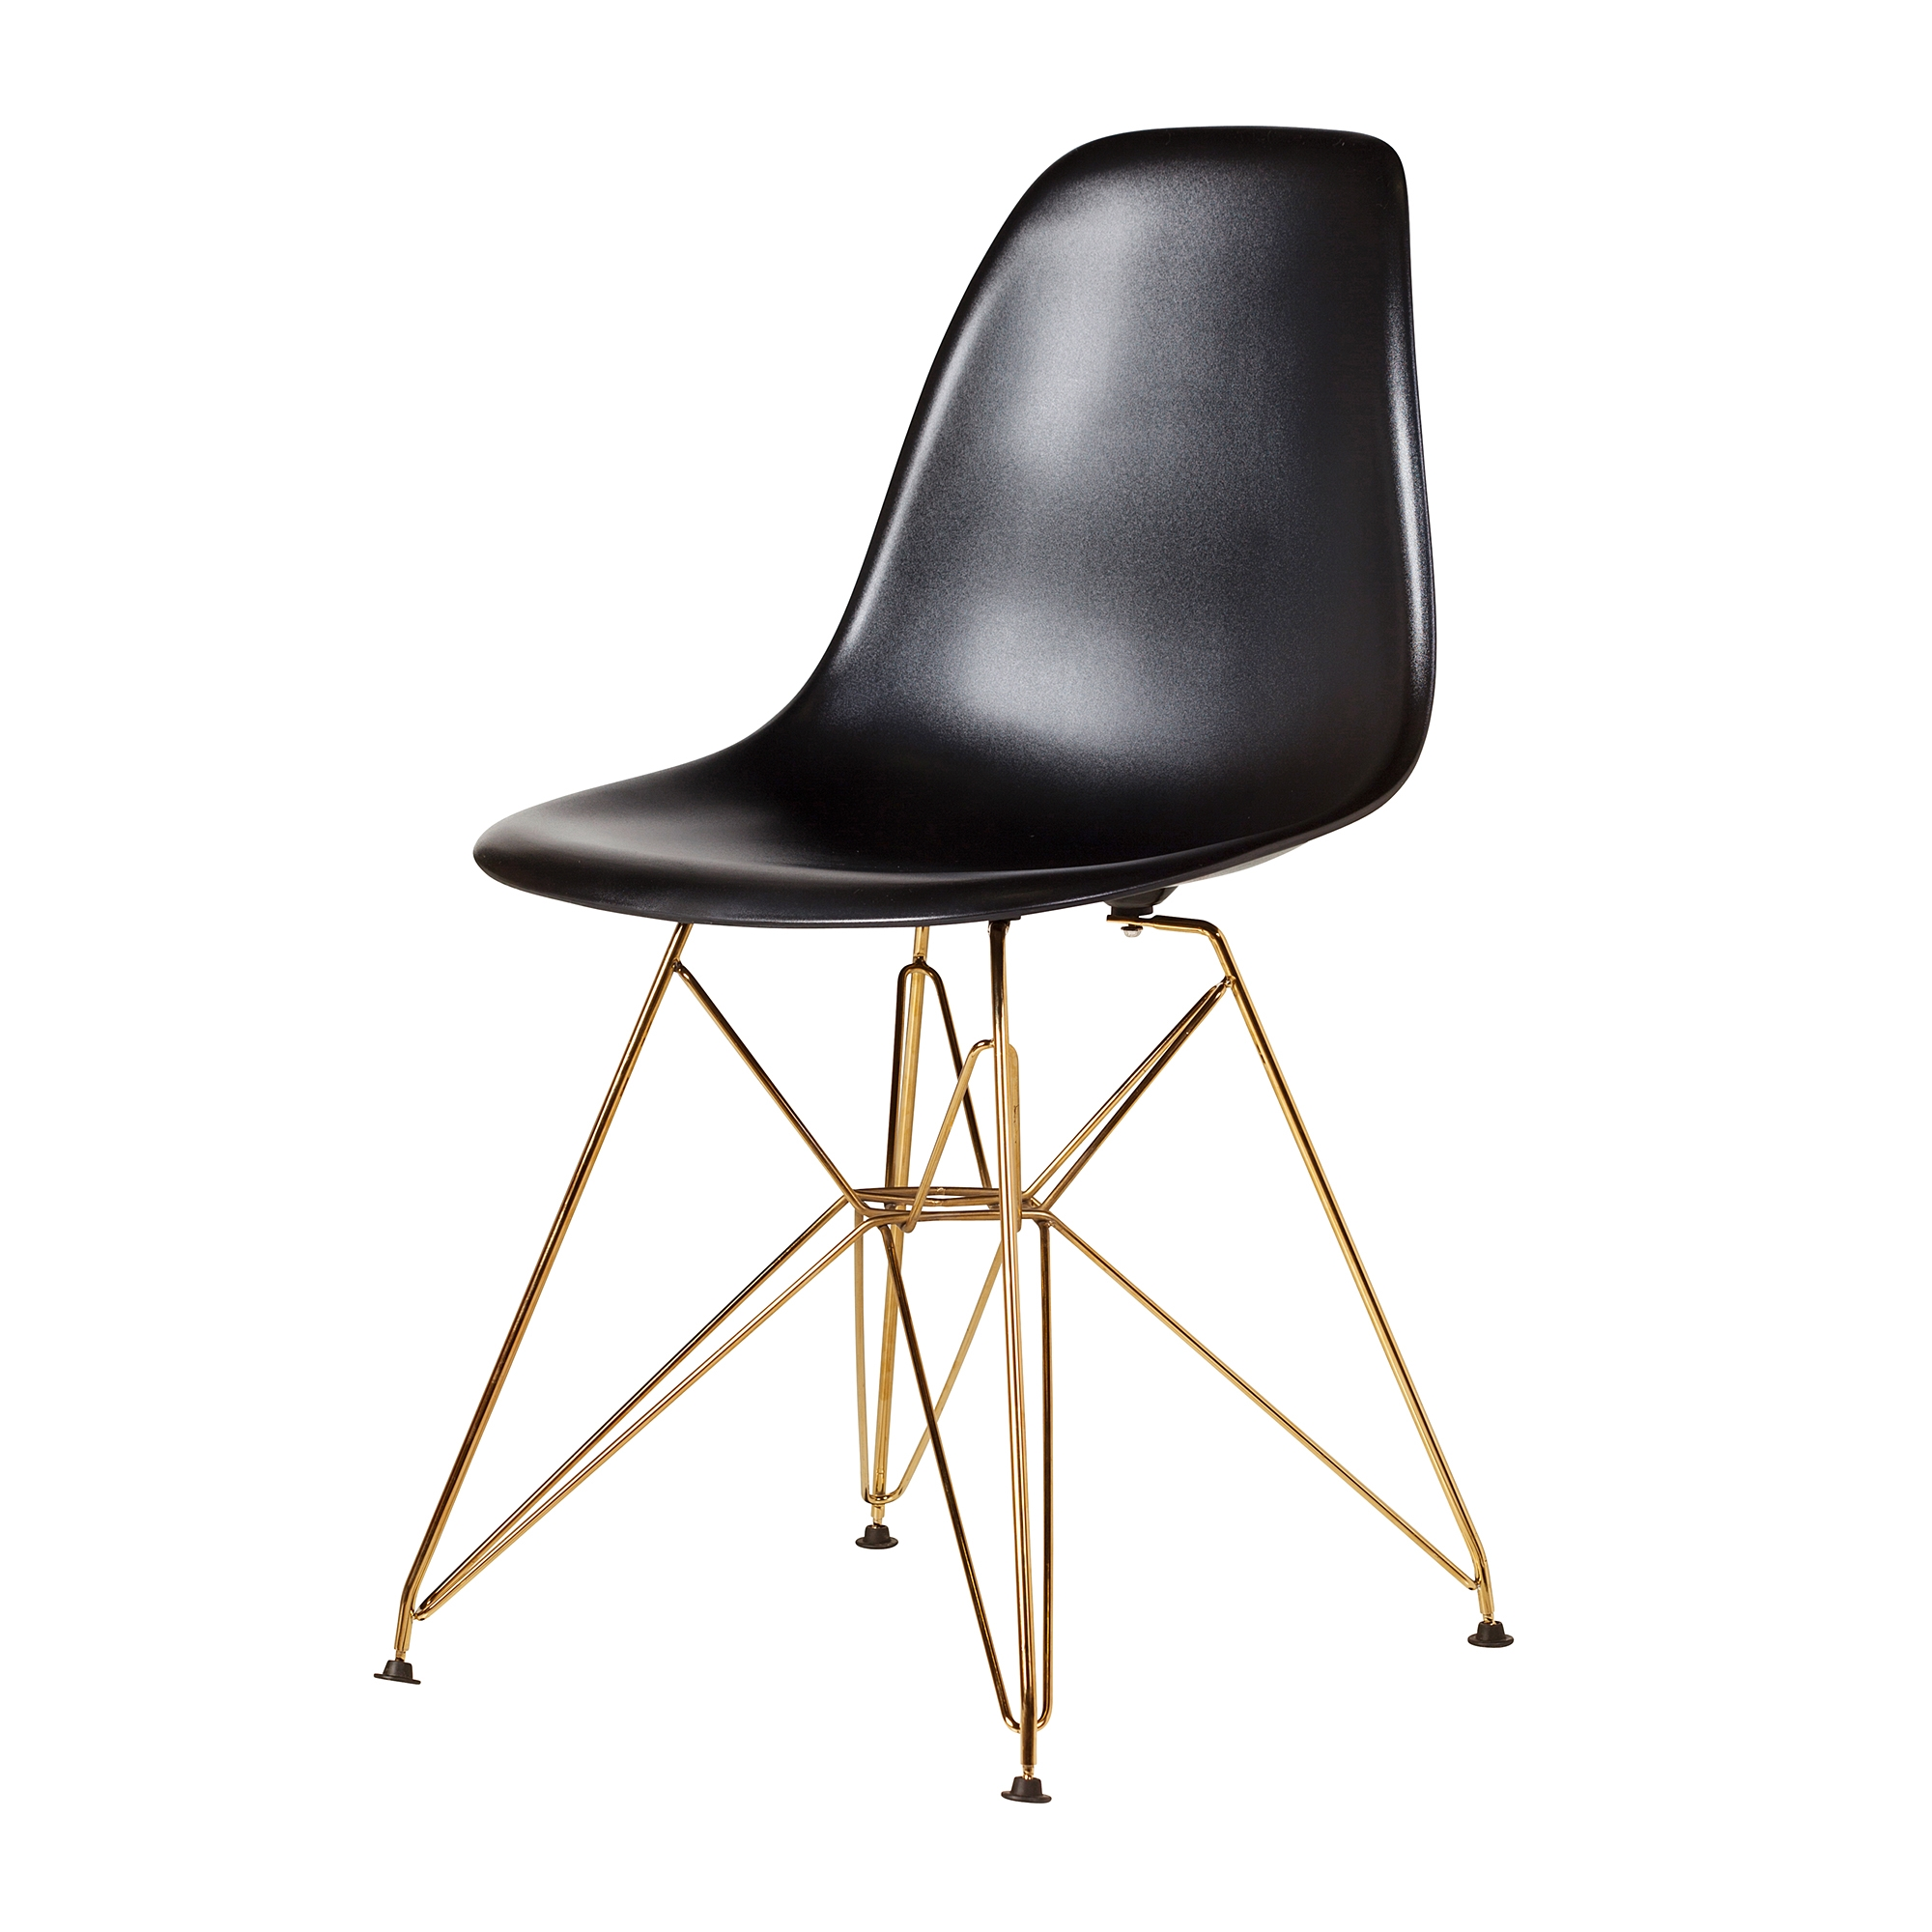 Eames Eiffel Molded Plastic Dsr Style Black Side Chair With Gold Legs